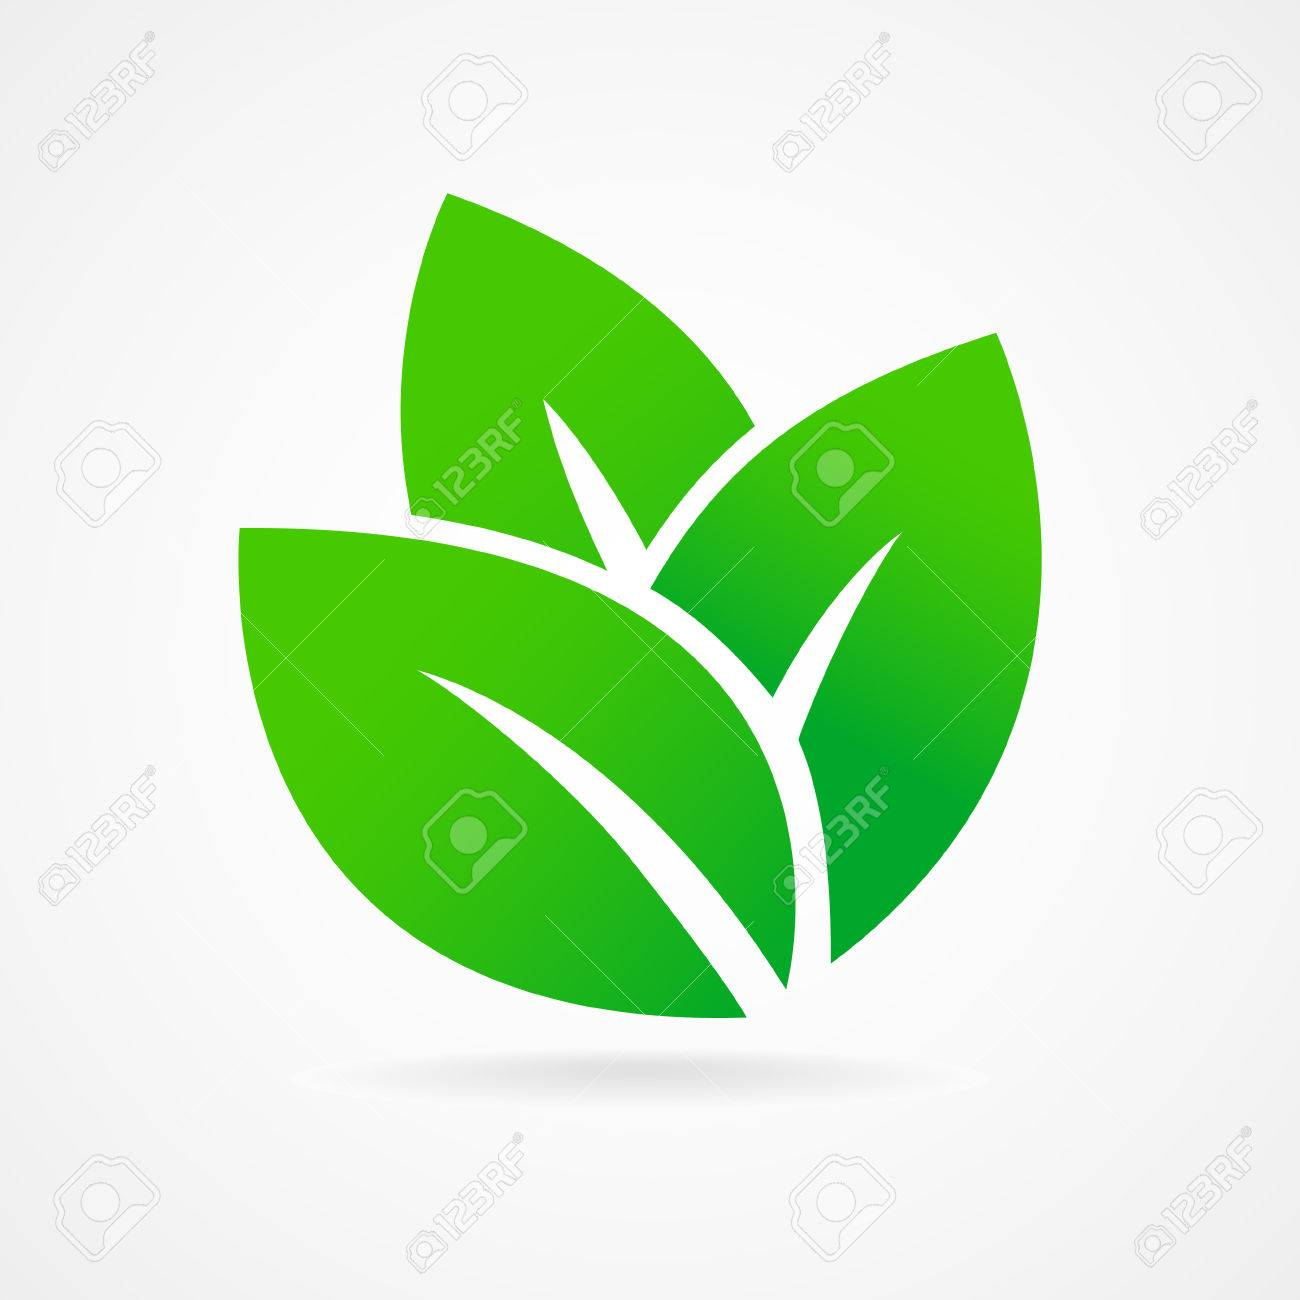 Eco icon green leaf vector illustration isolated - 39896473